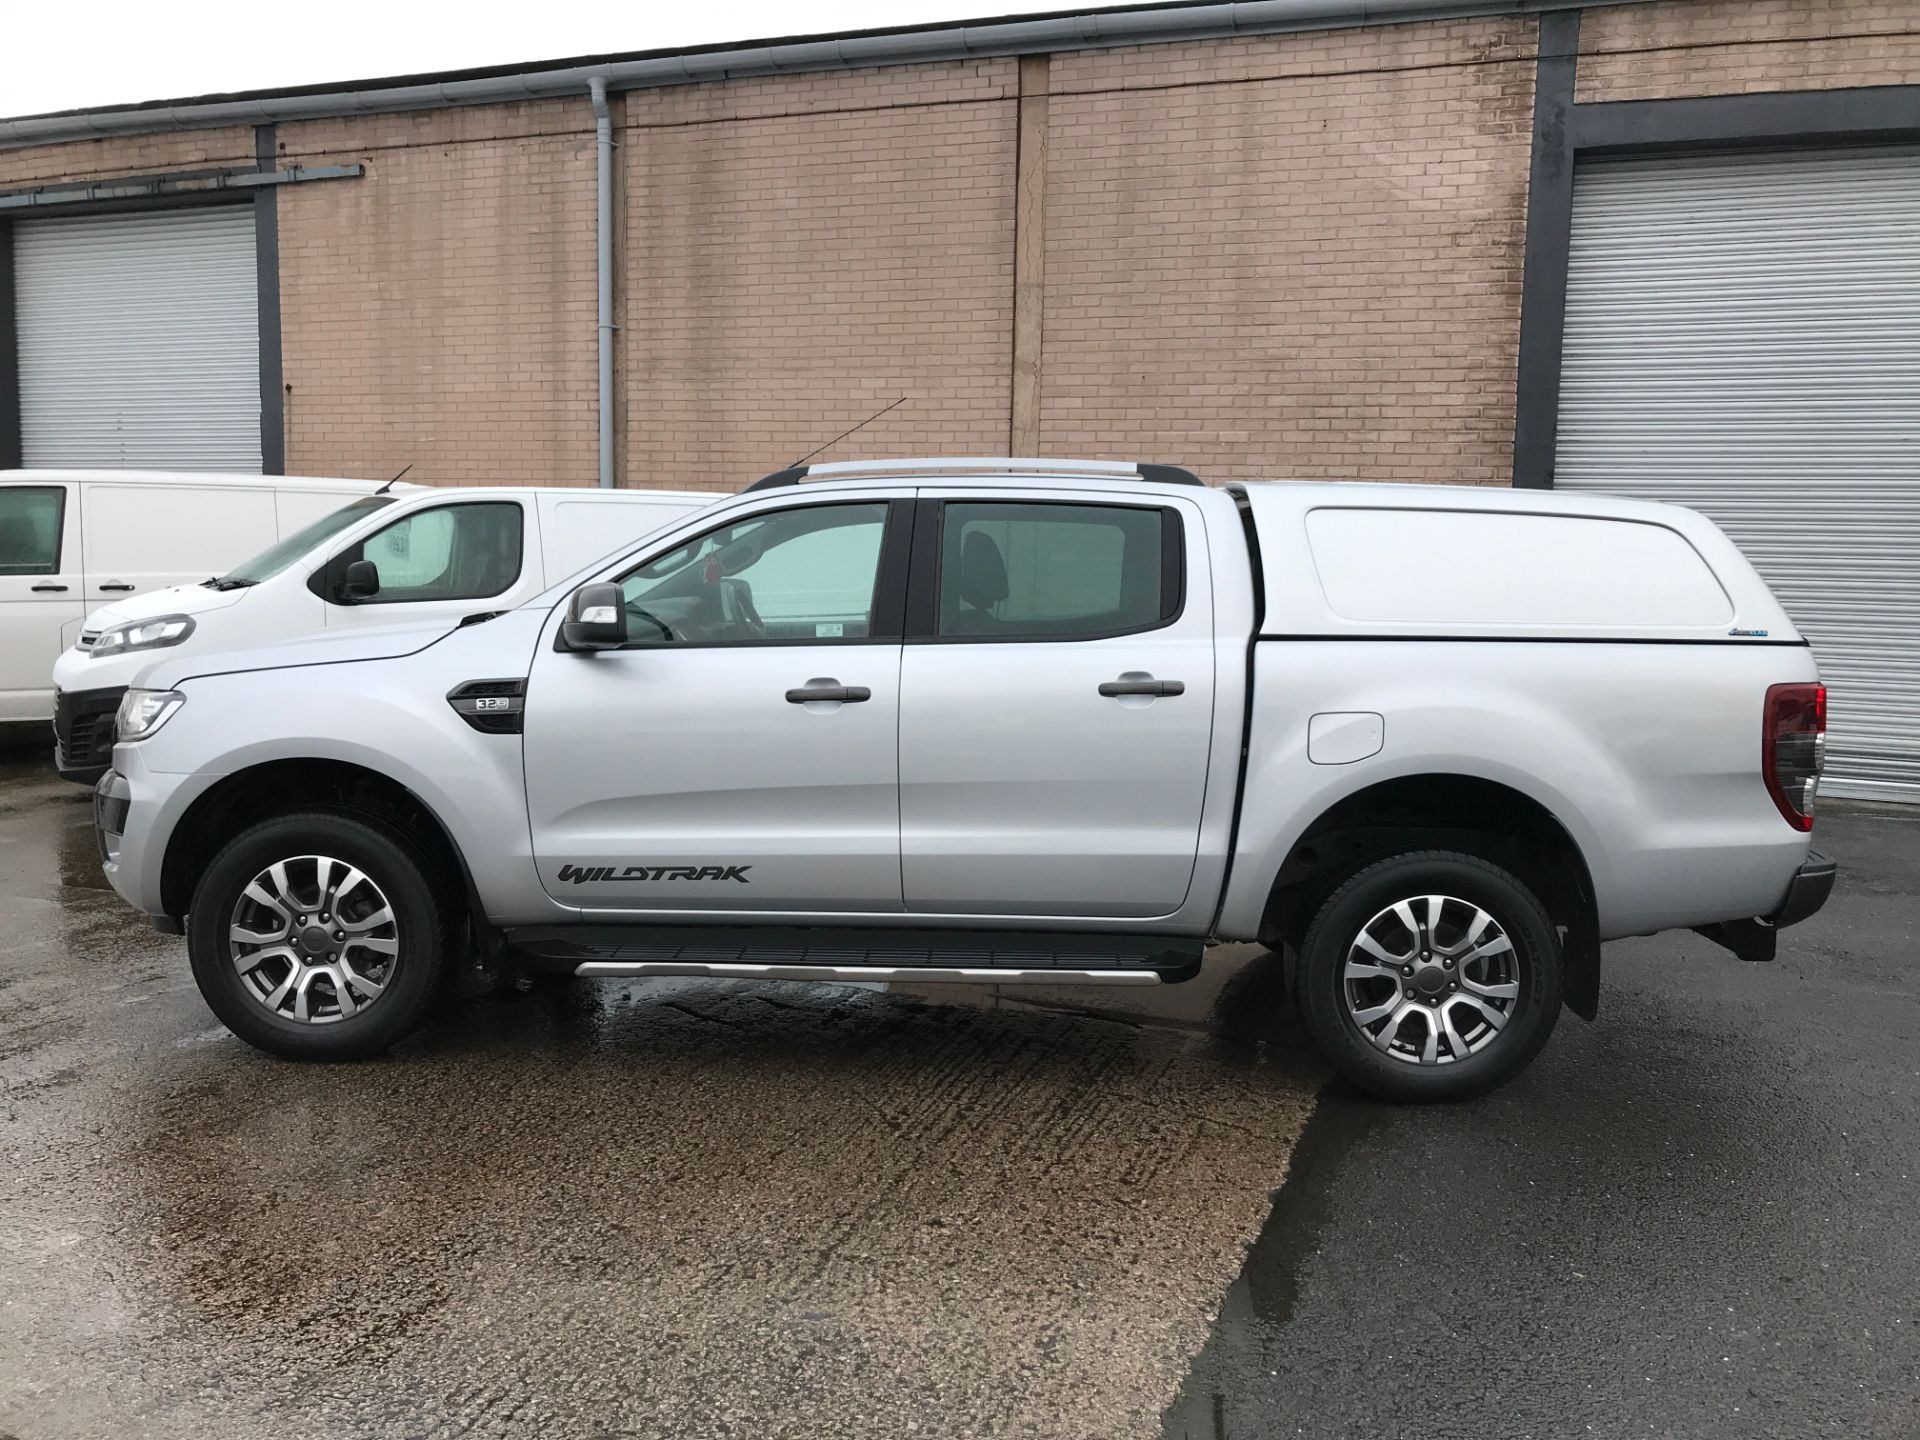 2018 Ford Ranger DOUBLE CAB 4X4 WILDTRAK 3.2TDI 200PS EURO 5 (FE18JPO) Thumbnail 11